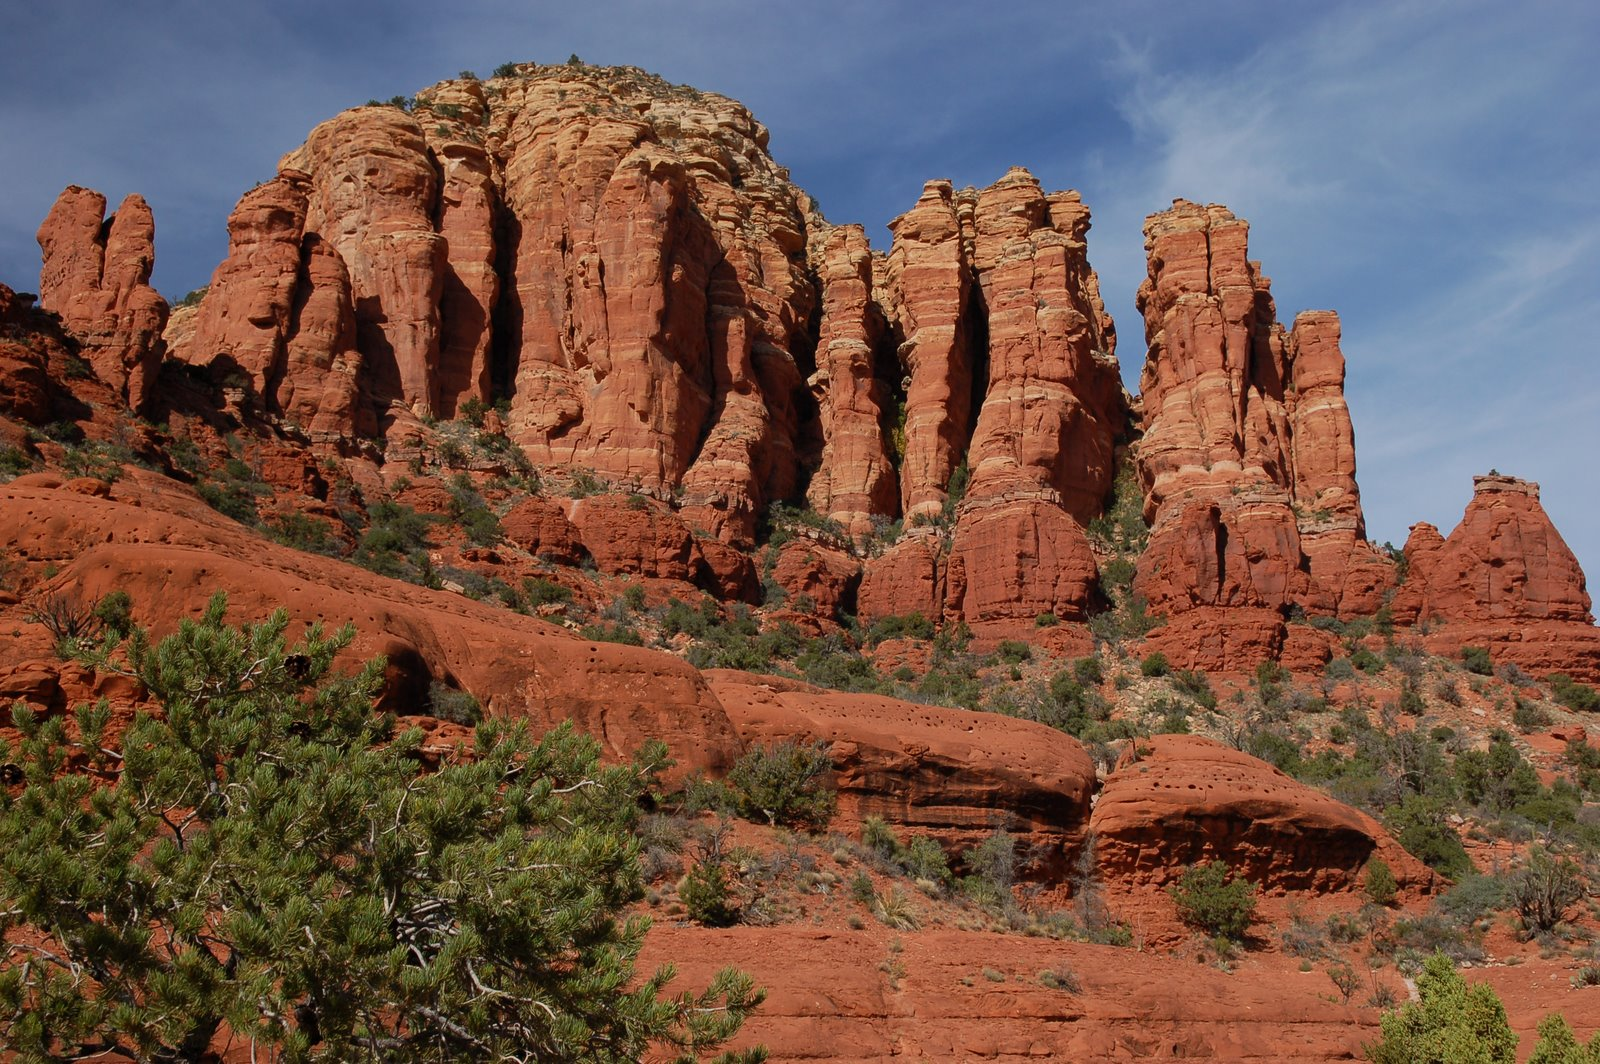 chicken point, broken arrow trail, sedona, arizona